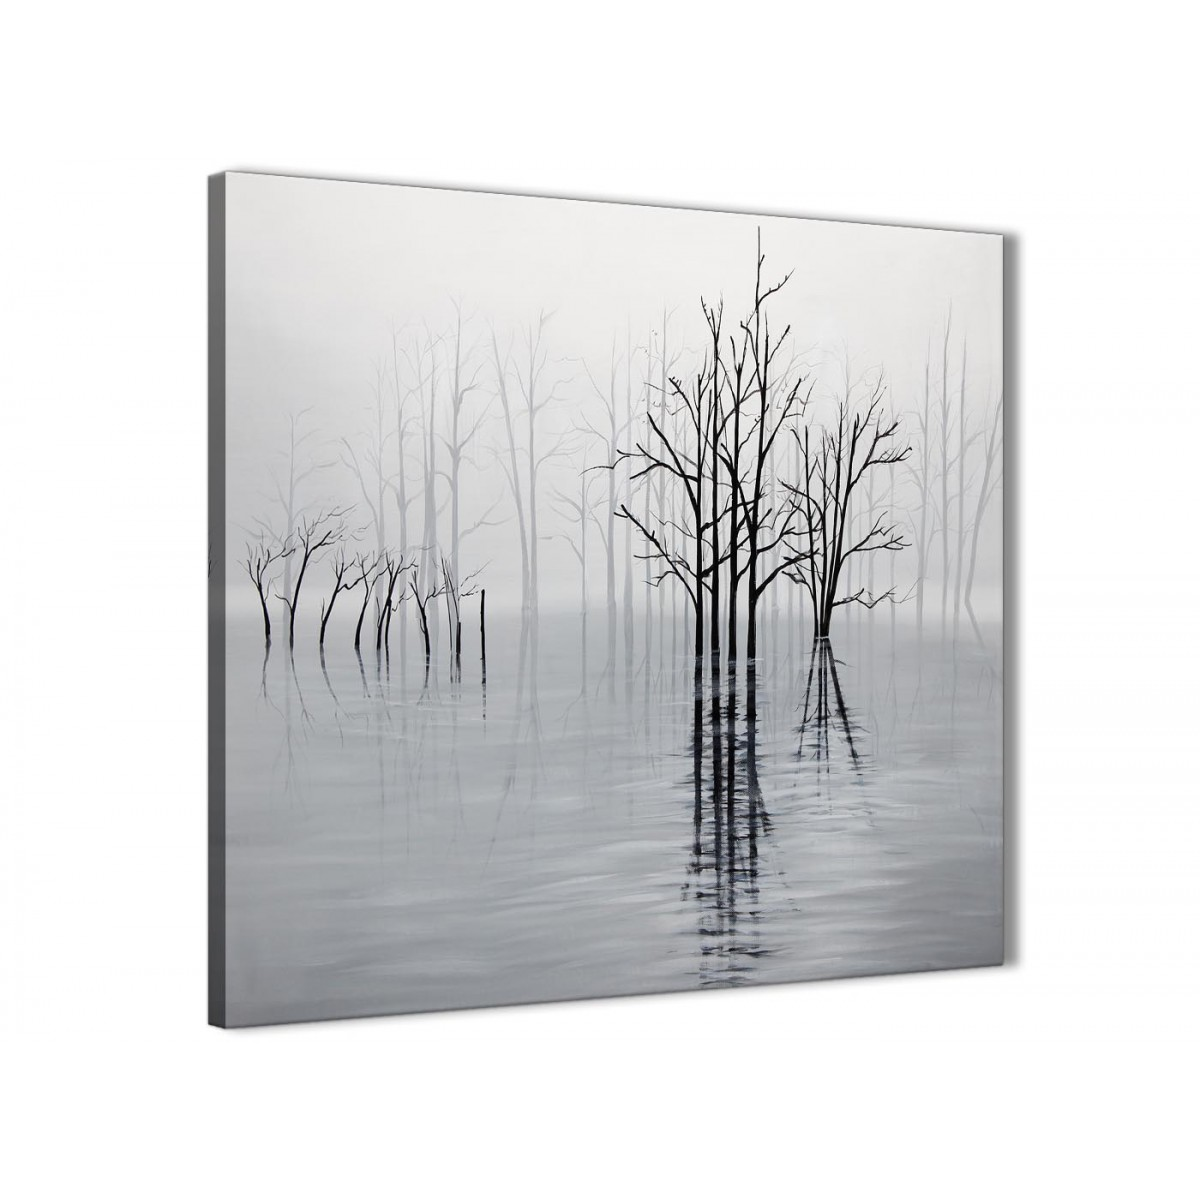 Bathroom Wall Art Uk Amazon: Black White Grey Tree Landscape Painting Kitchen Canvas